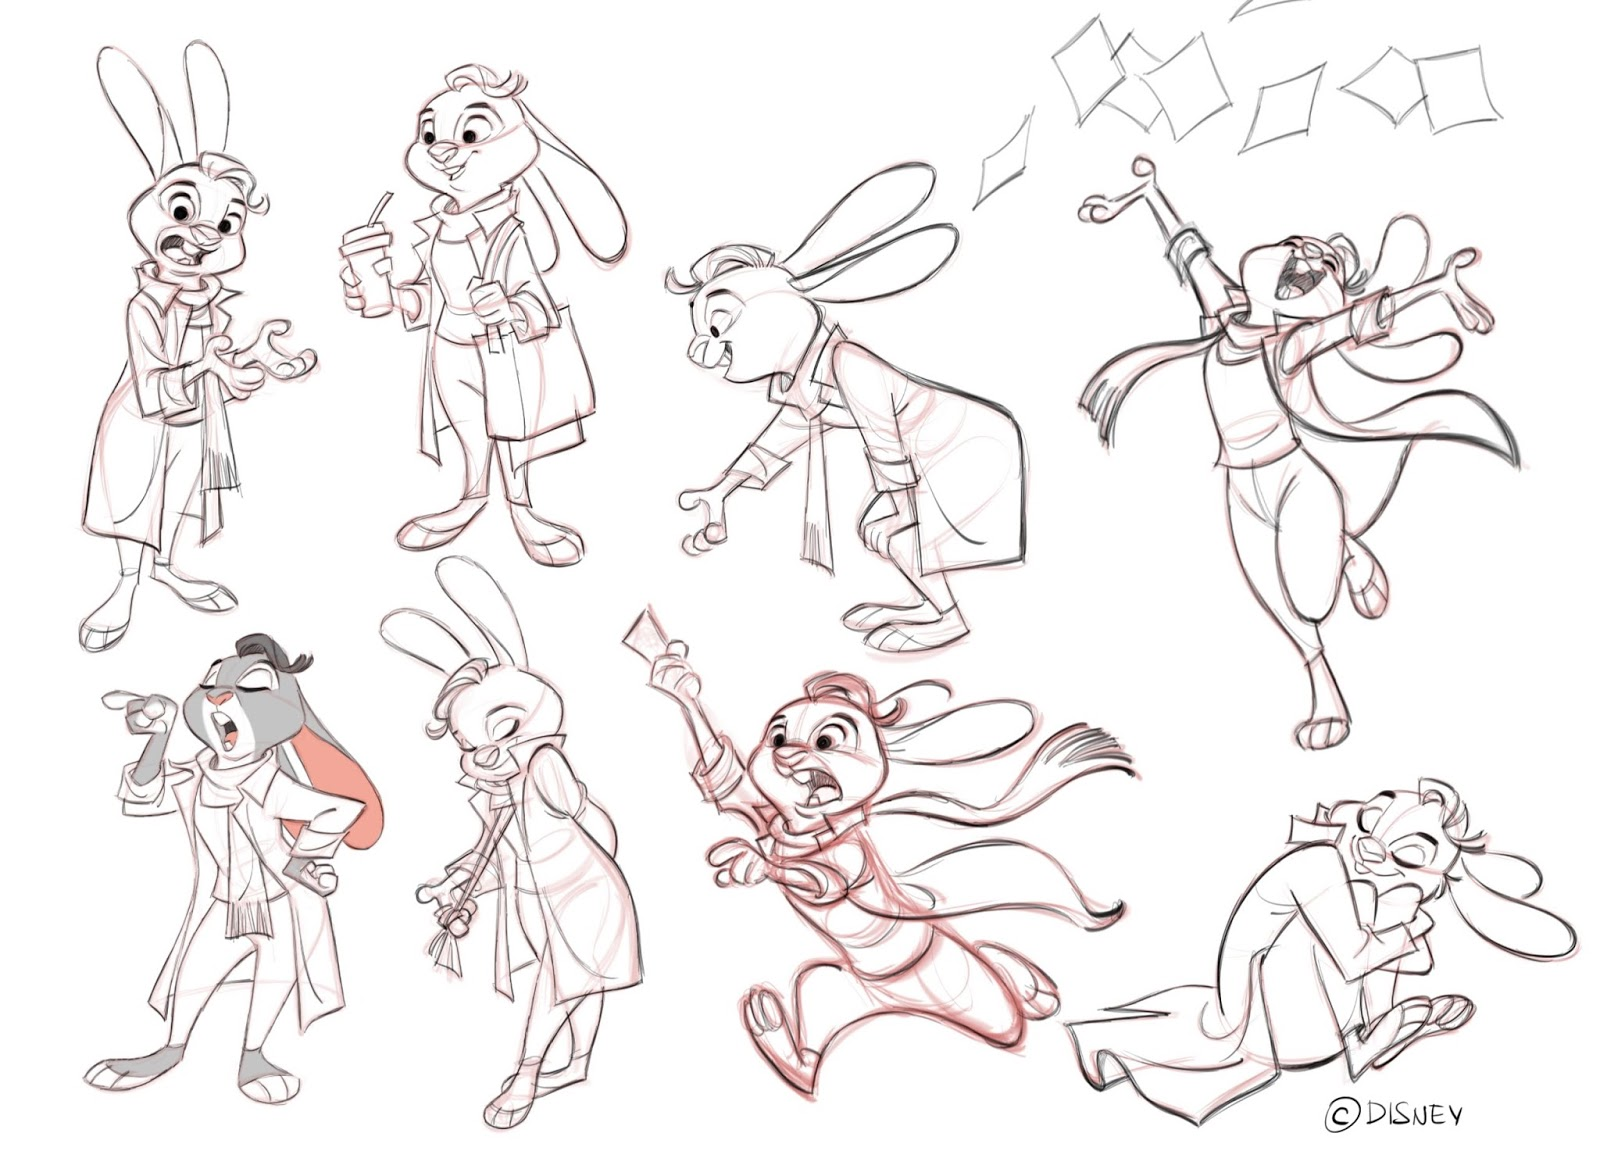 Disney Character Design Artists : Cool art poses from borja montoro by zootopiafanart on